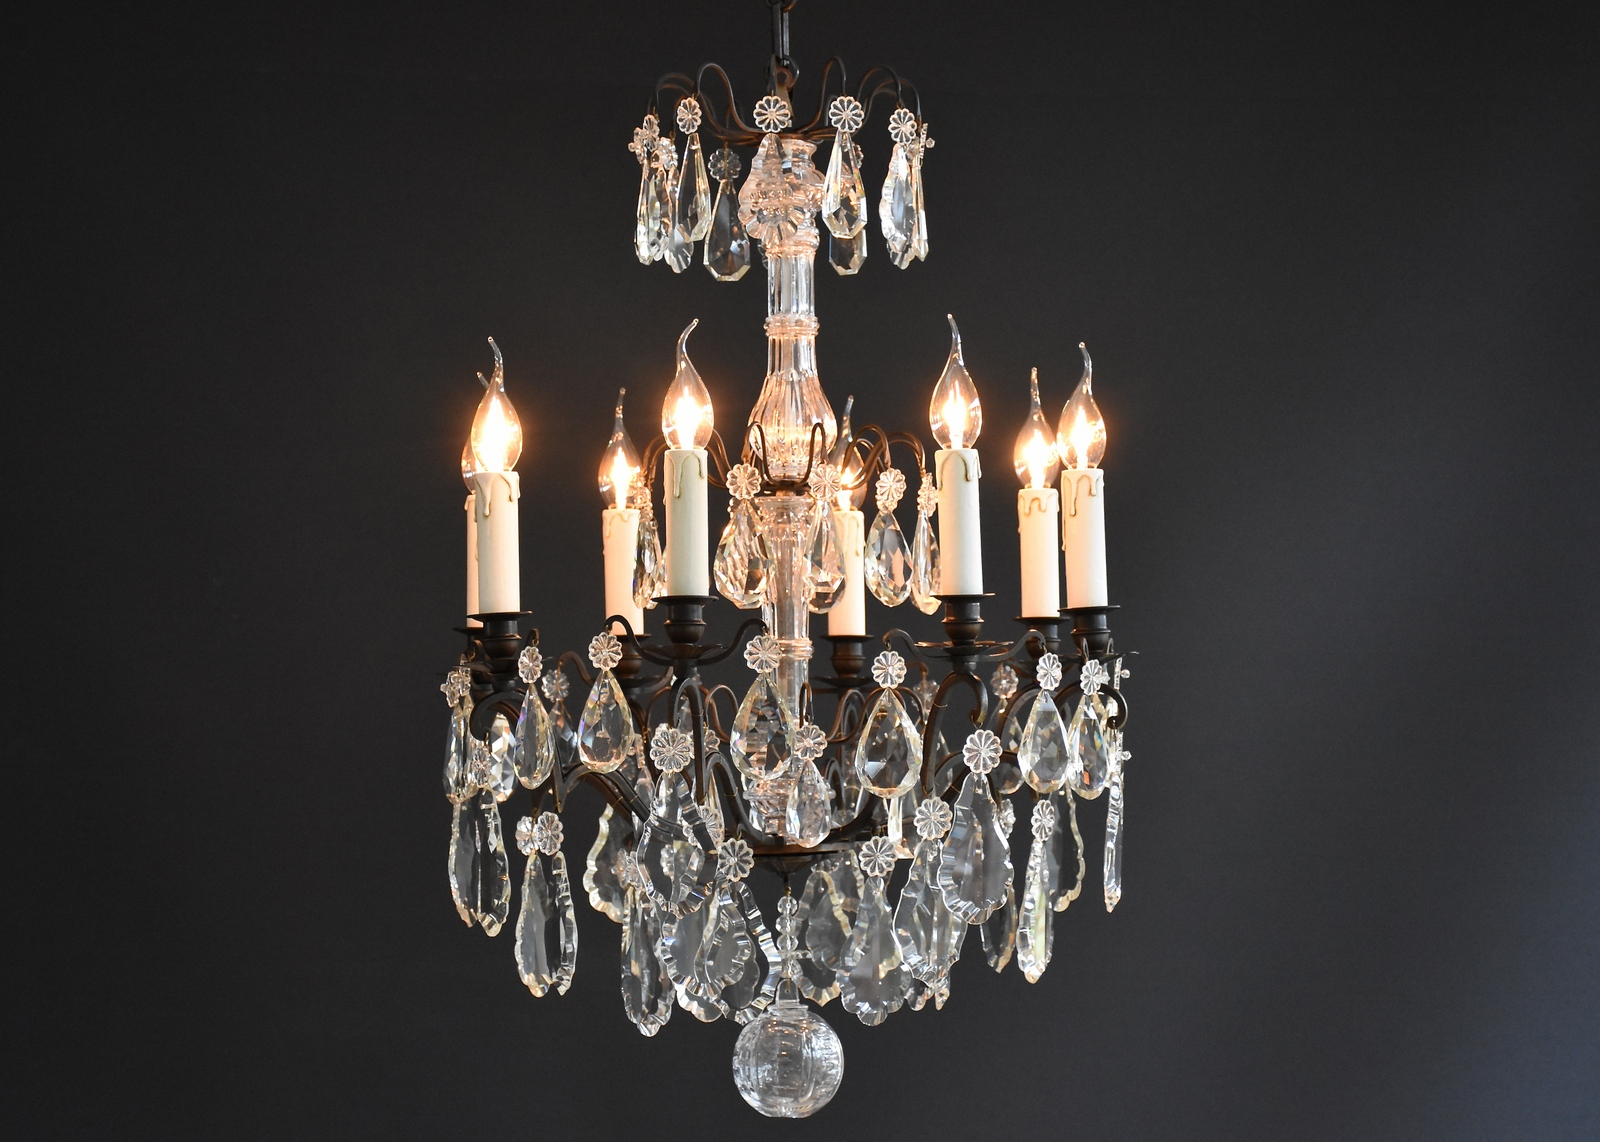 French chandelier with 8 light and a dark patina